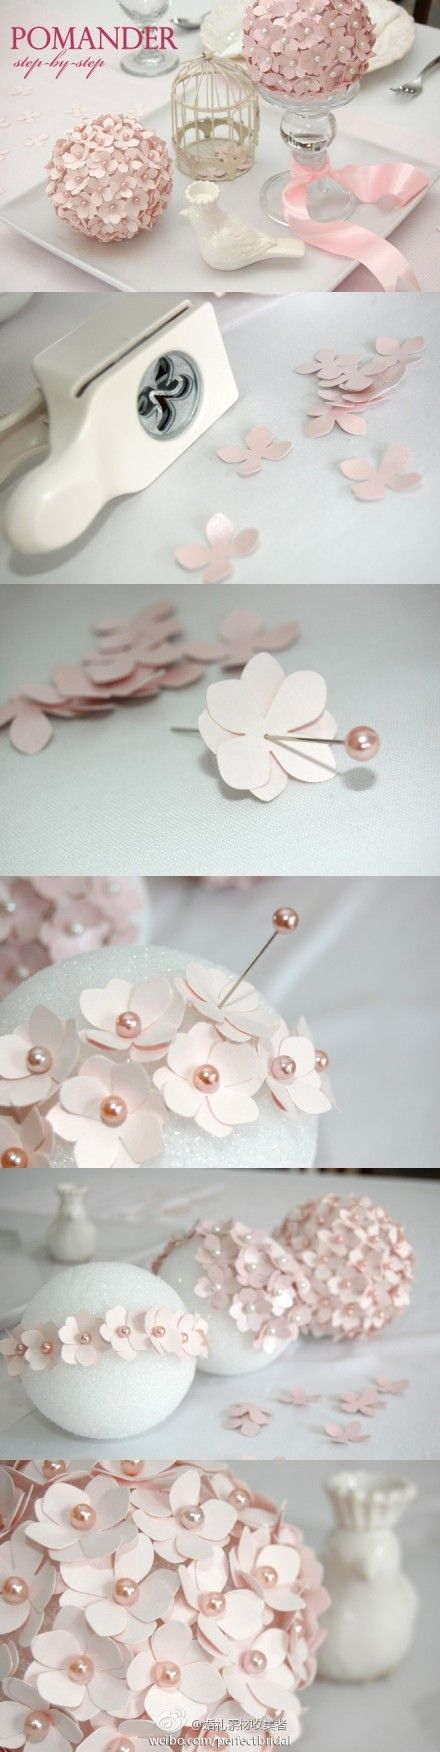 DIY…i could totally do this!! @ Wedding-Day-Bliss